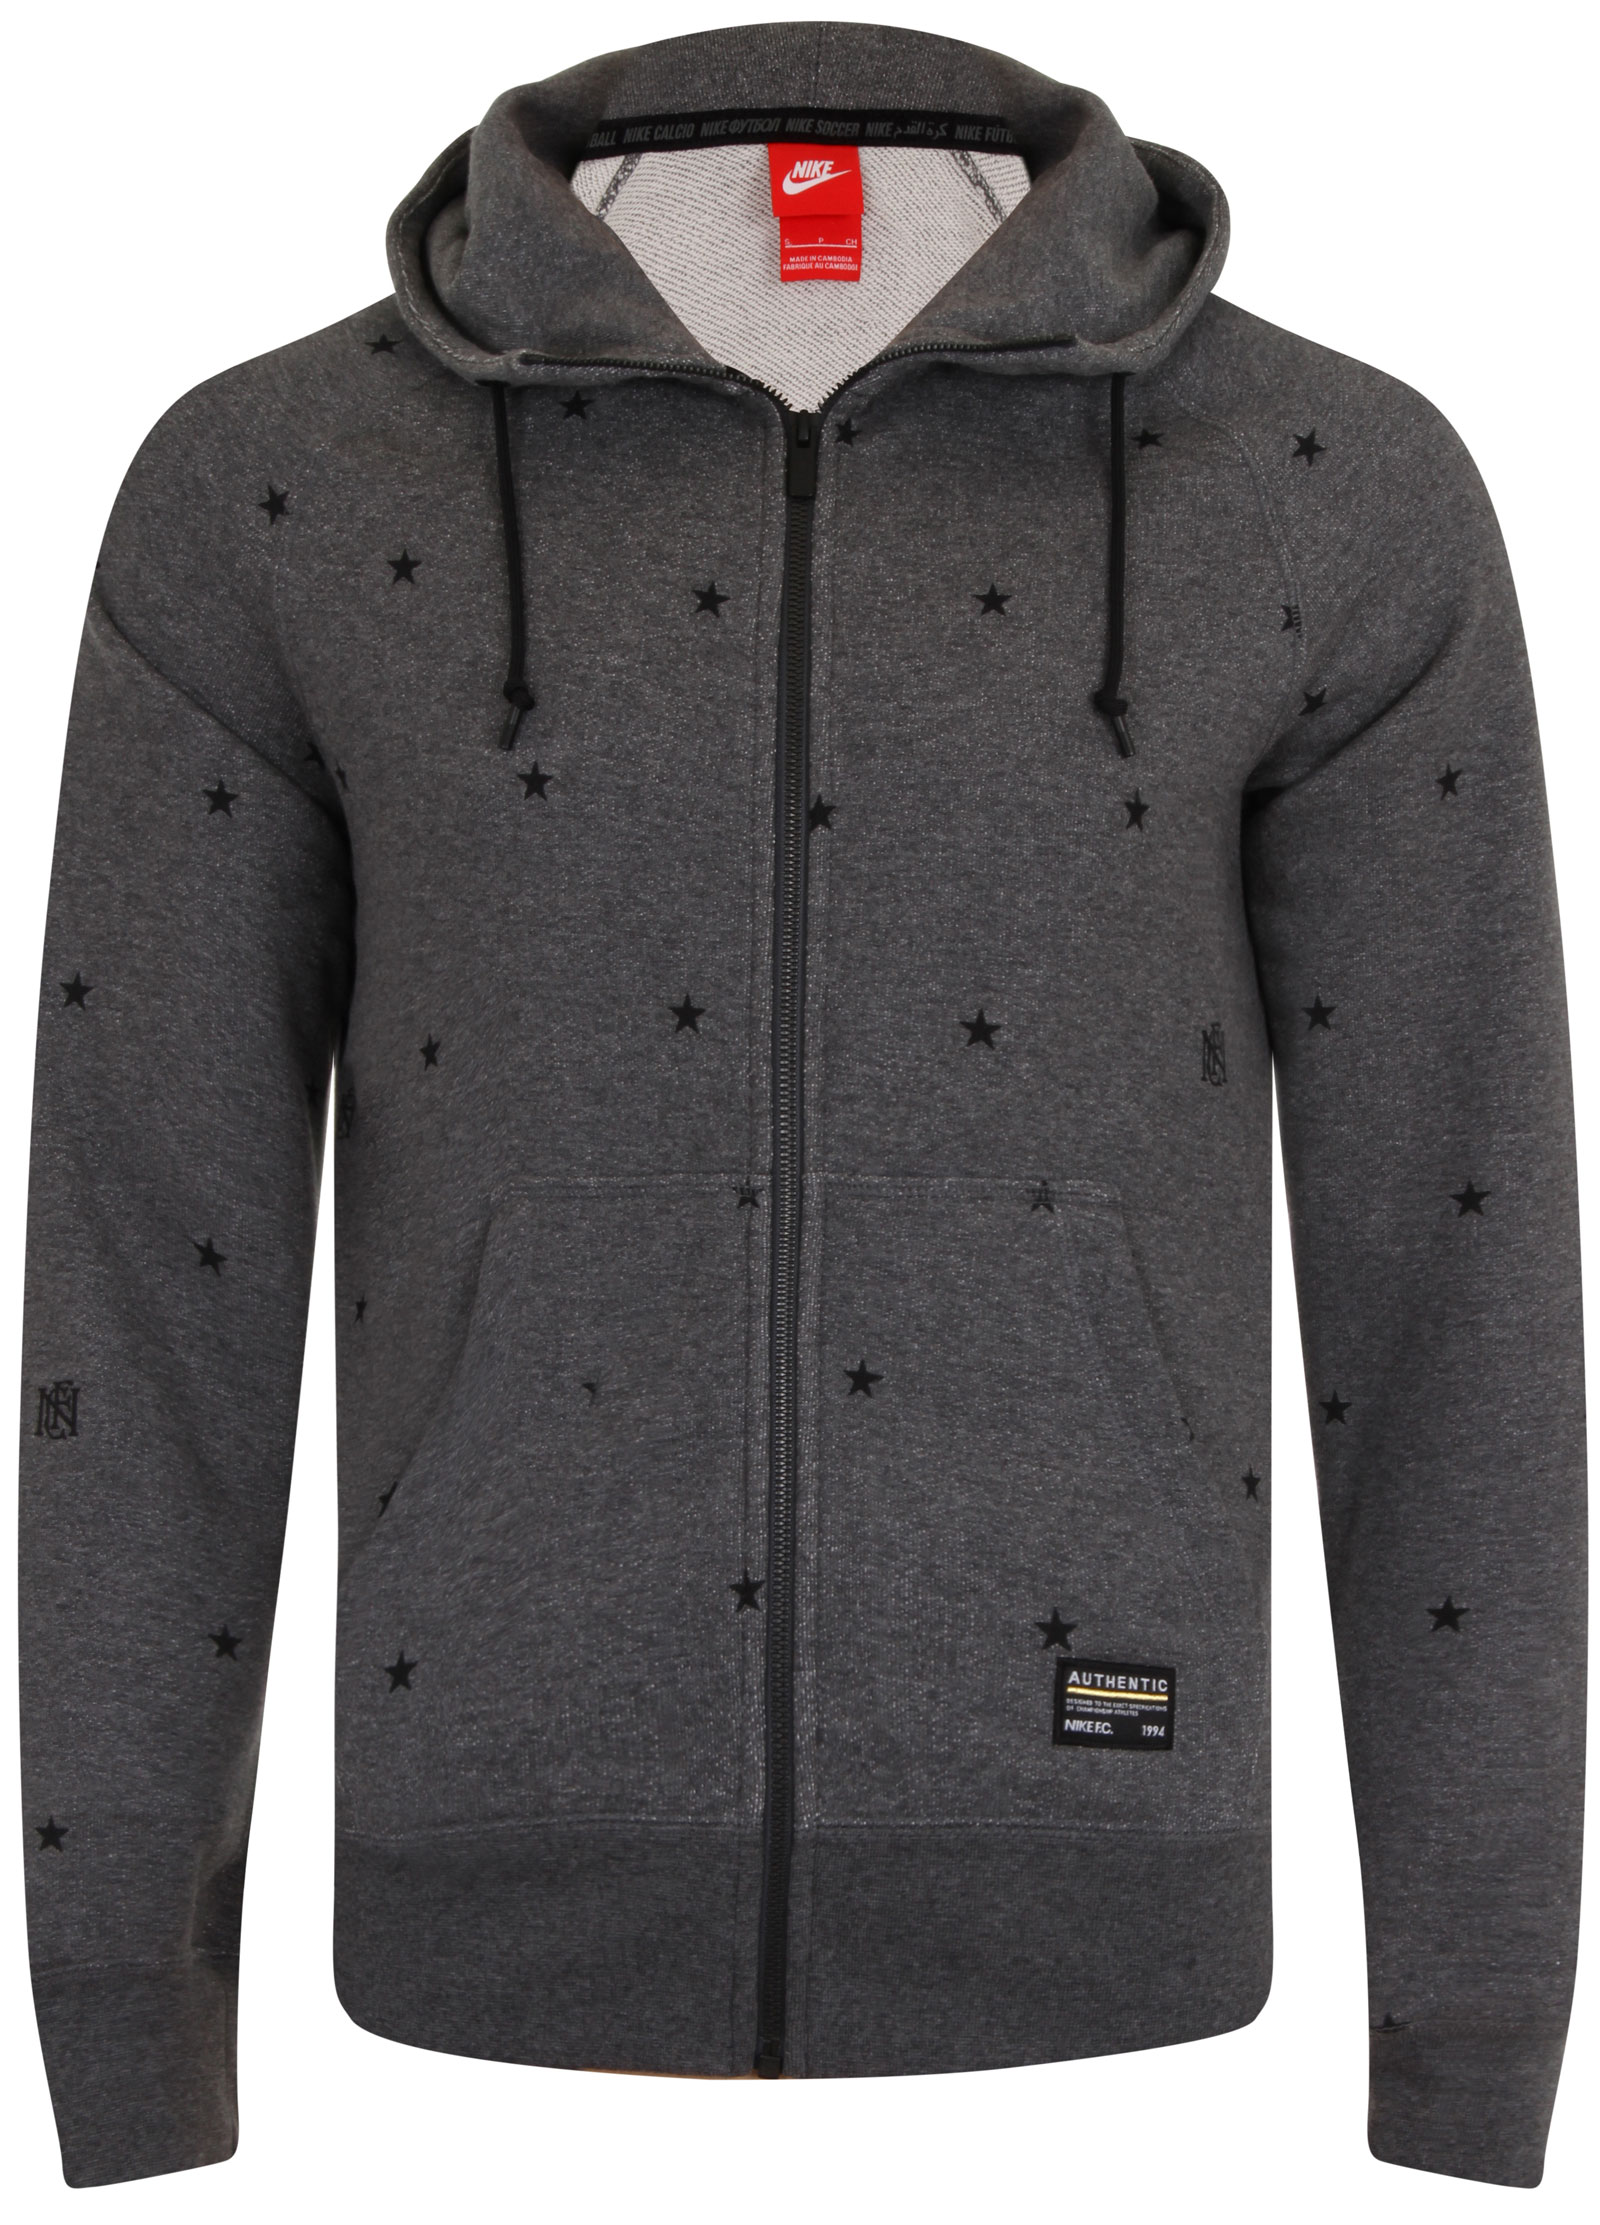 new nike aw77 fc star print mens zip up hoodie hoody all. Black Bedroom Furniture Sets. Home Design Ideas